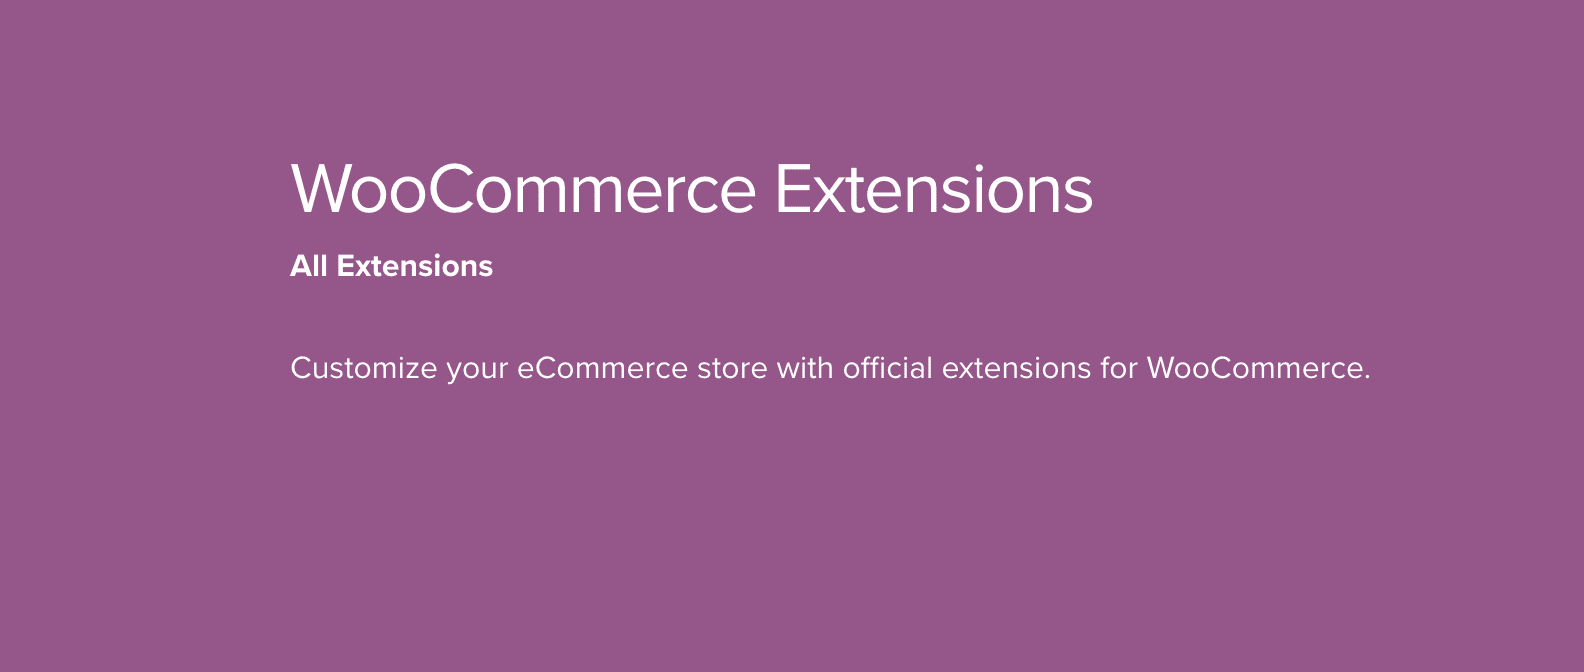 The WooCommerce Extensions banner.